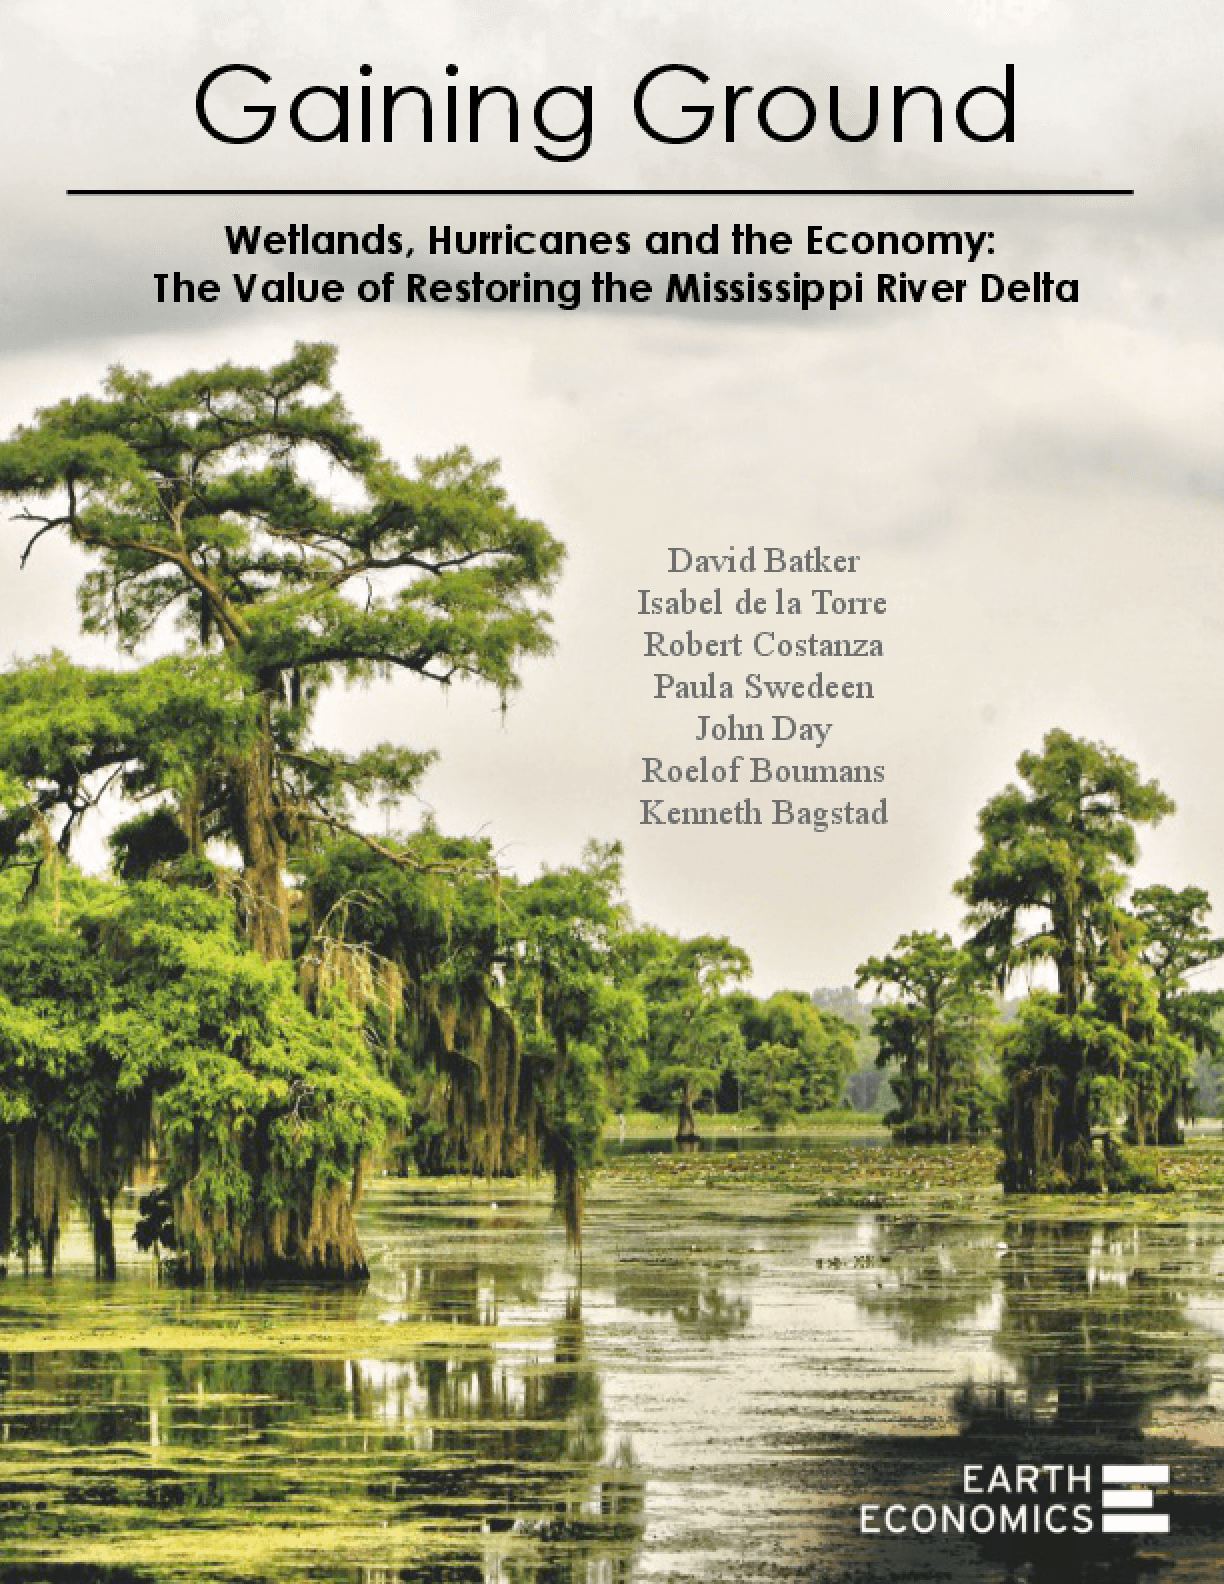 Gaining Ground: Wetlands, Hurricanes and the Economy: The Value of Restoring the Mississippi River Delta